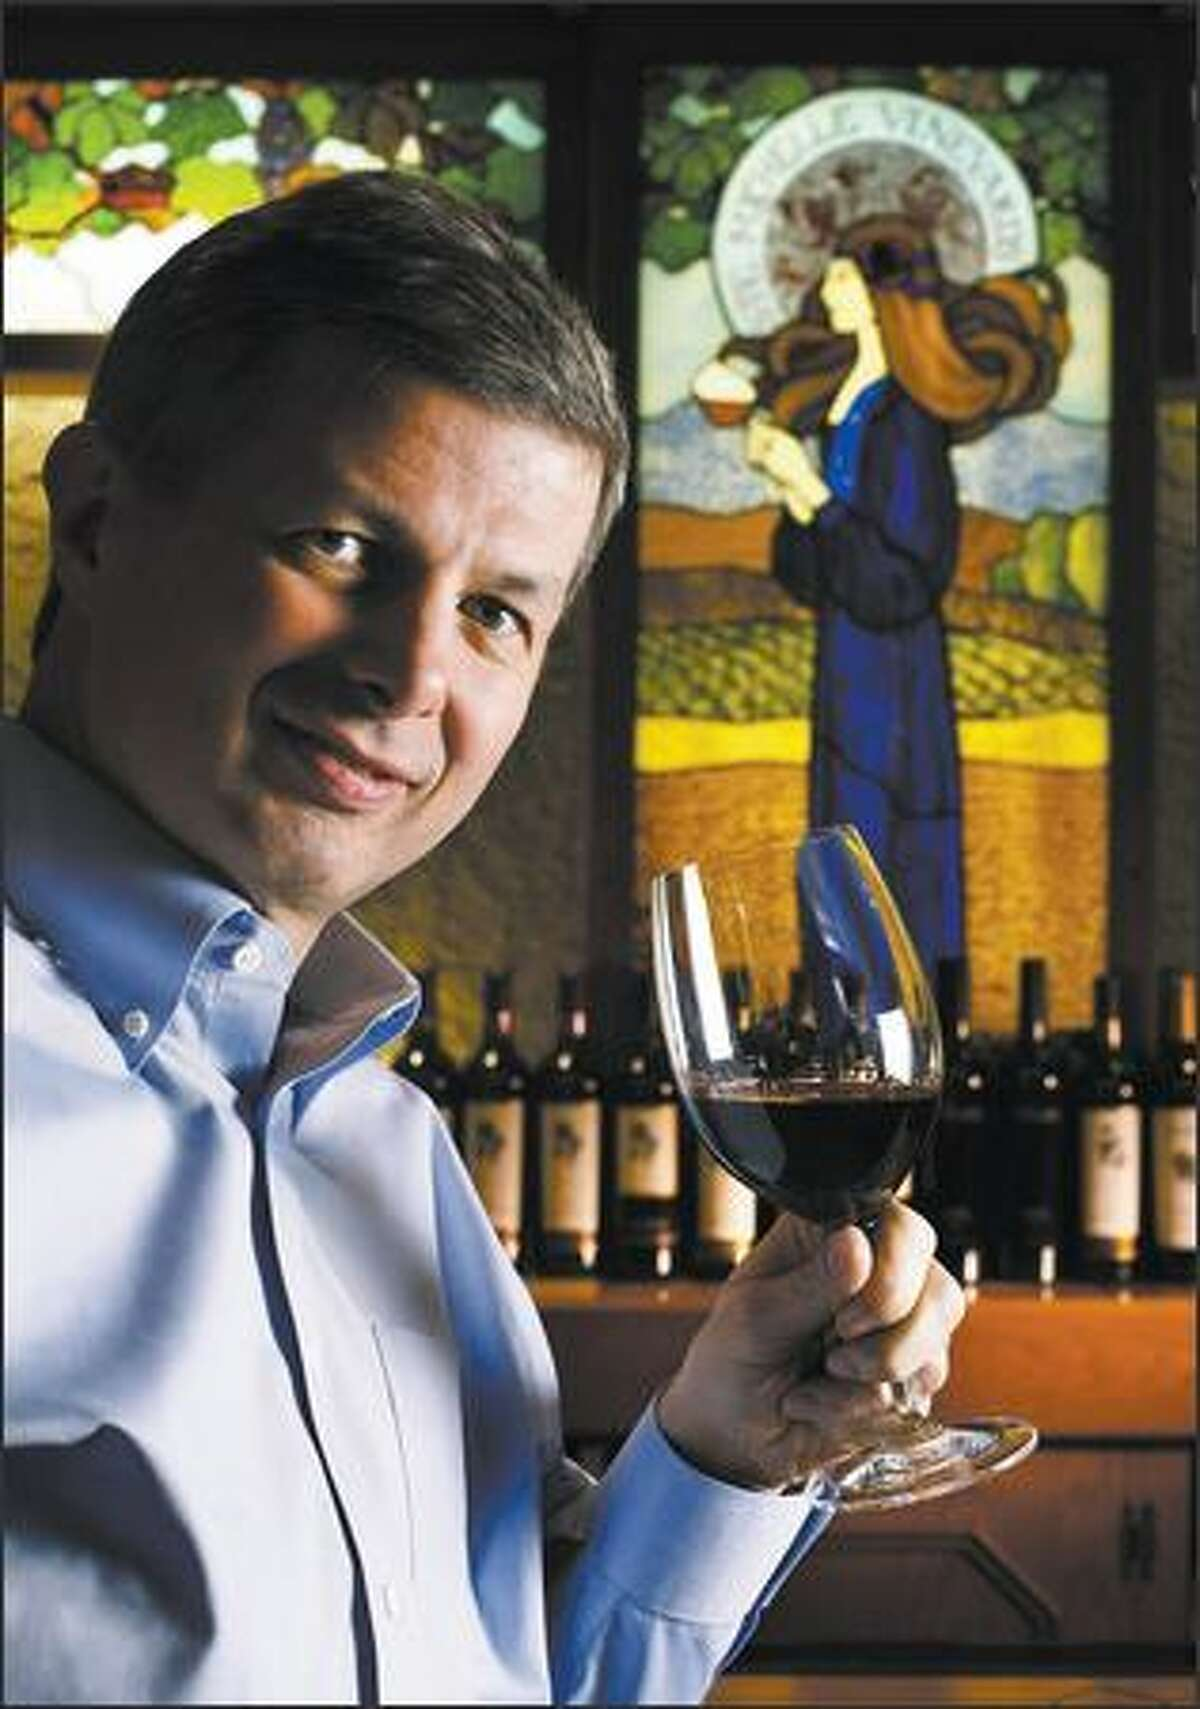 Ste. Michelle Wine Estates CEO Ted Baseler lifts a glass of 2004 Col Solare at a chateau tasting bar.